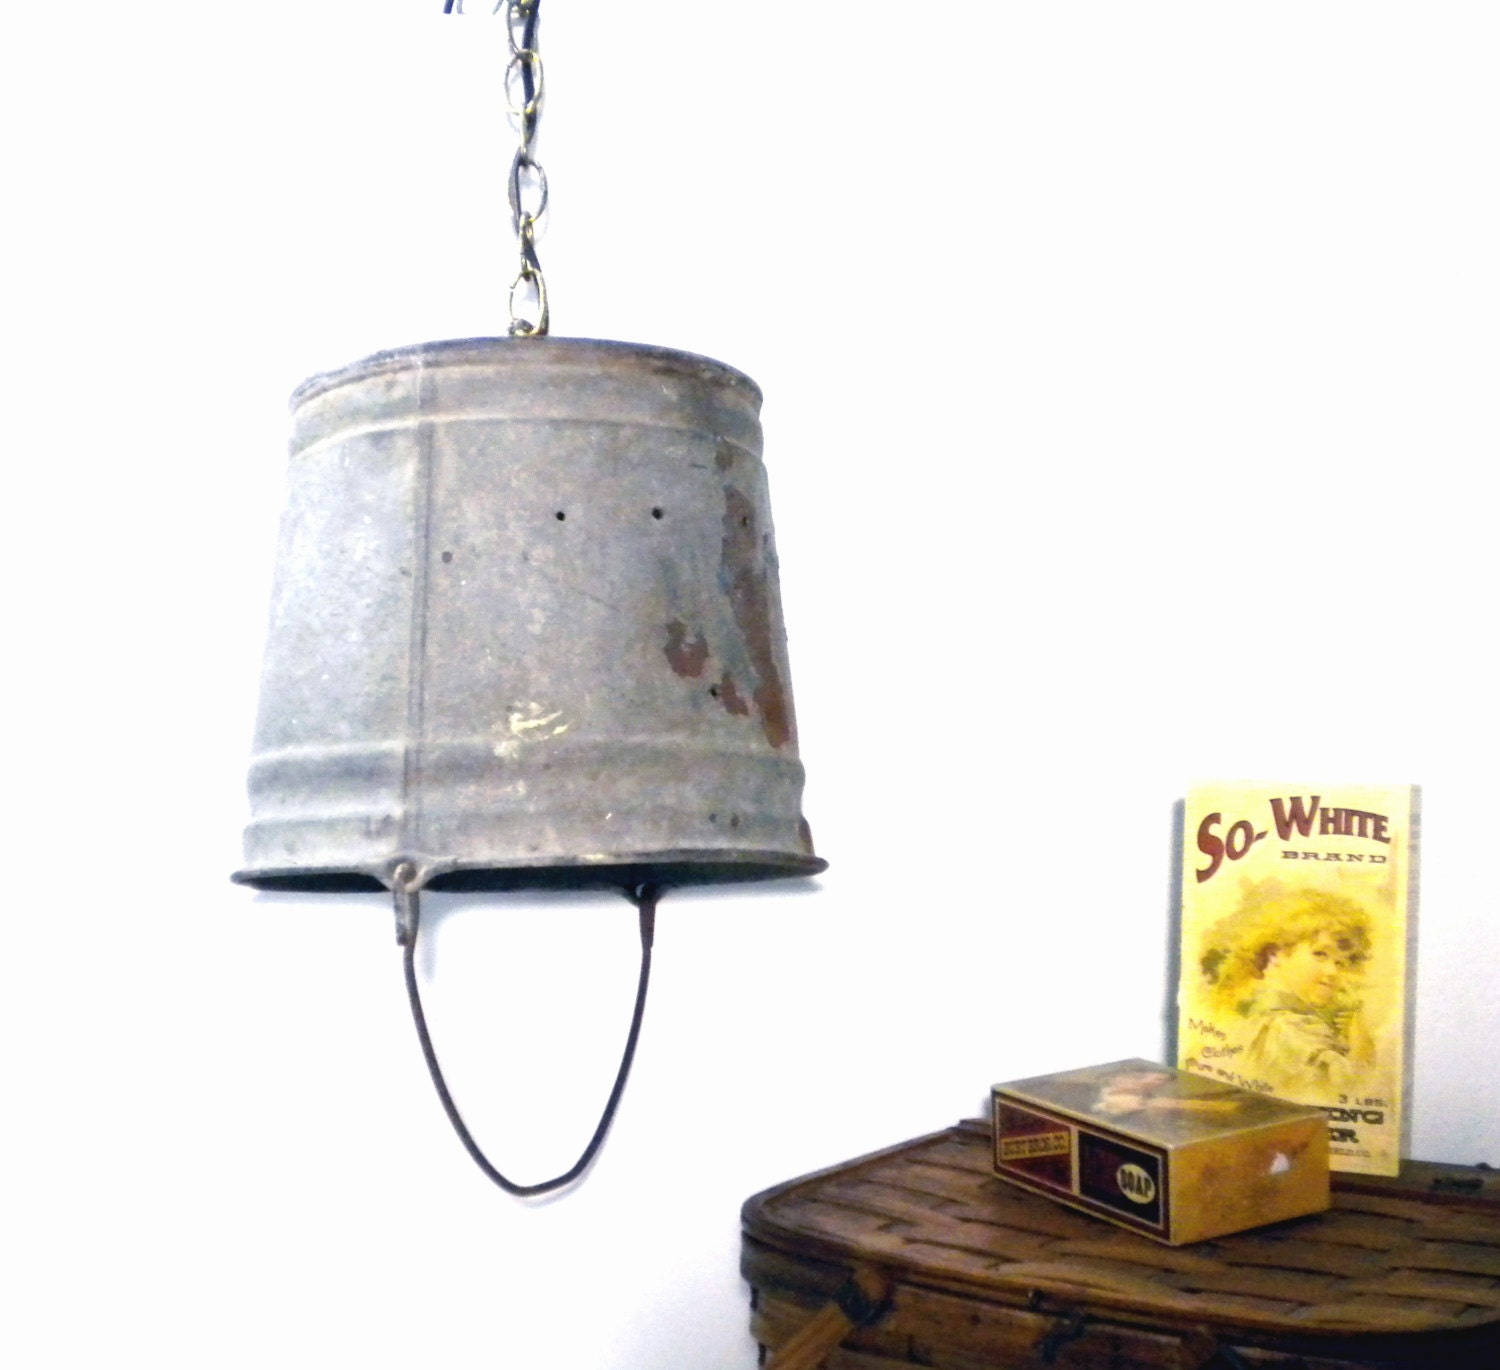 Vintage Swag Lamp Rustic Galvanized Metal Bucket Shade Light